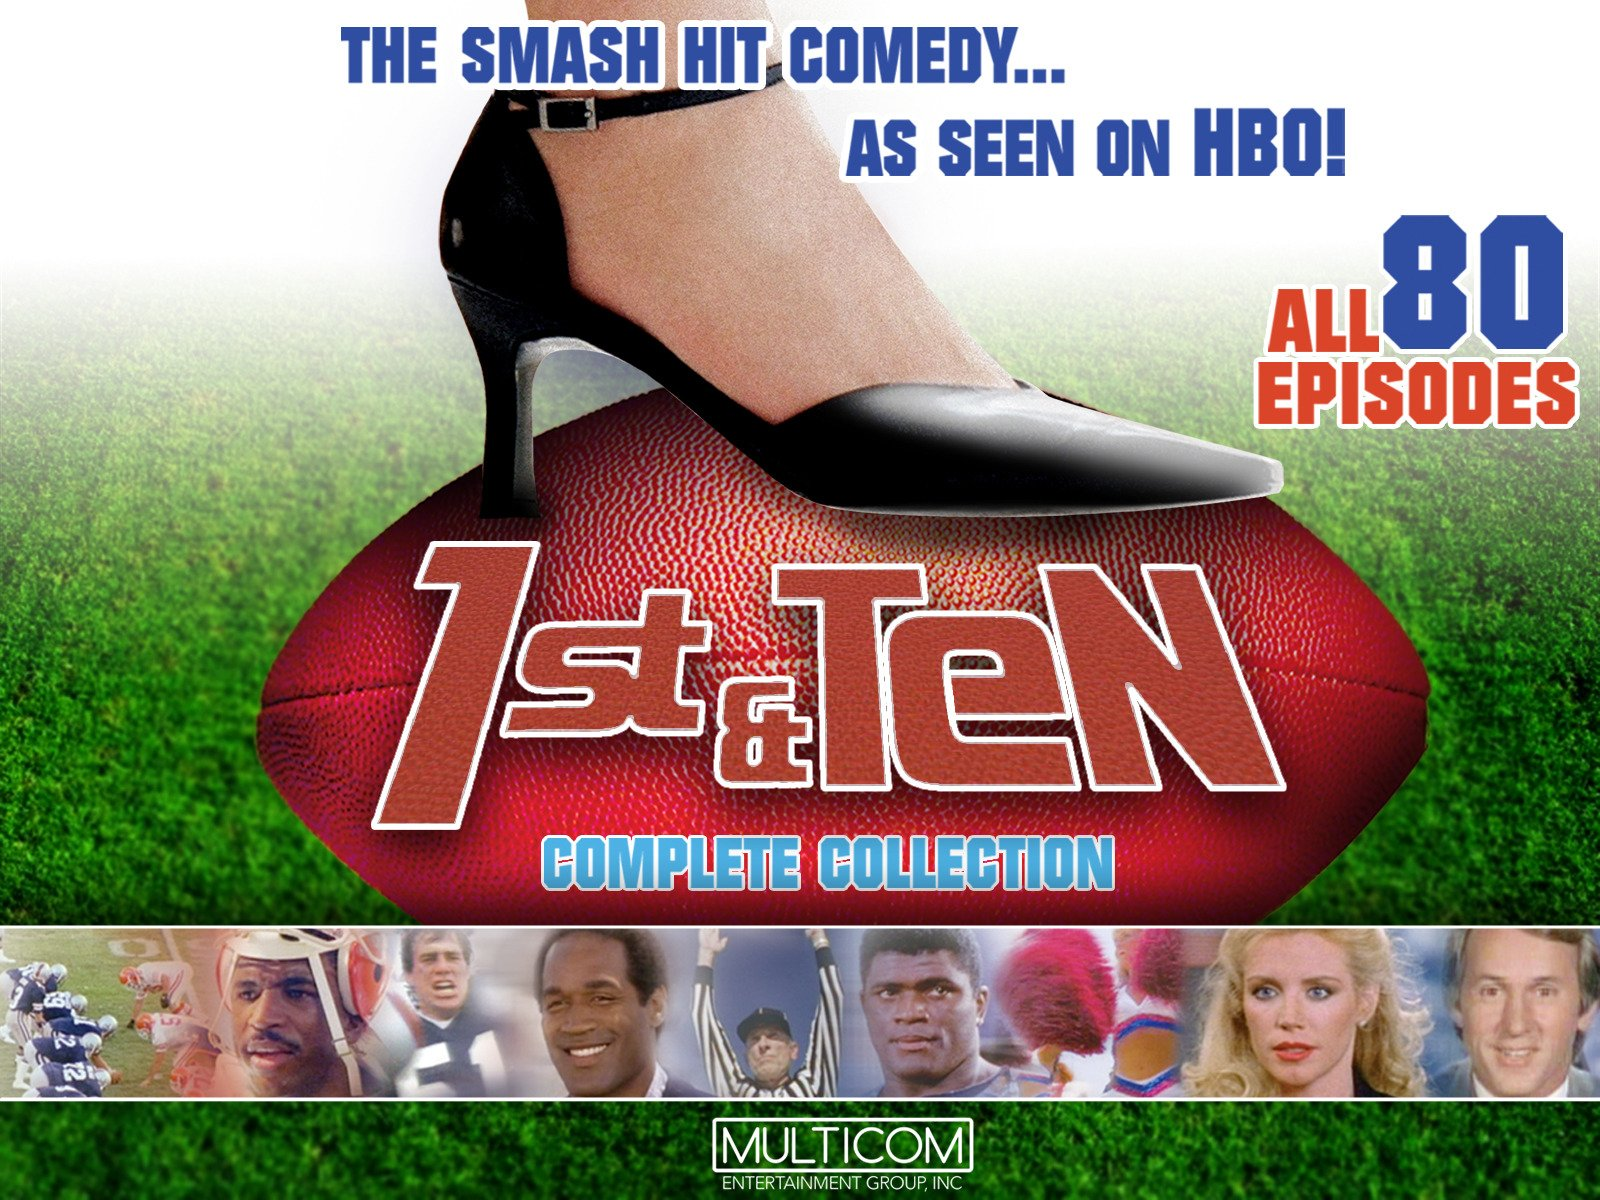 1st & Ten - Season 4